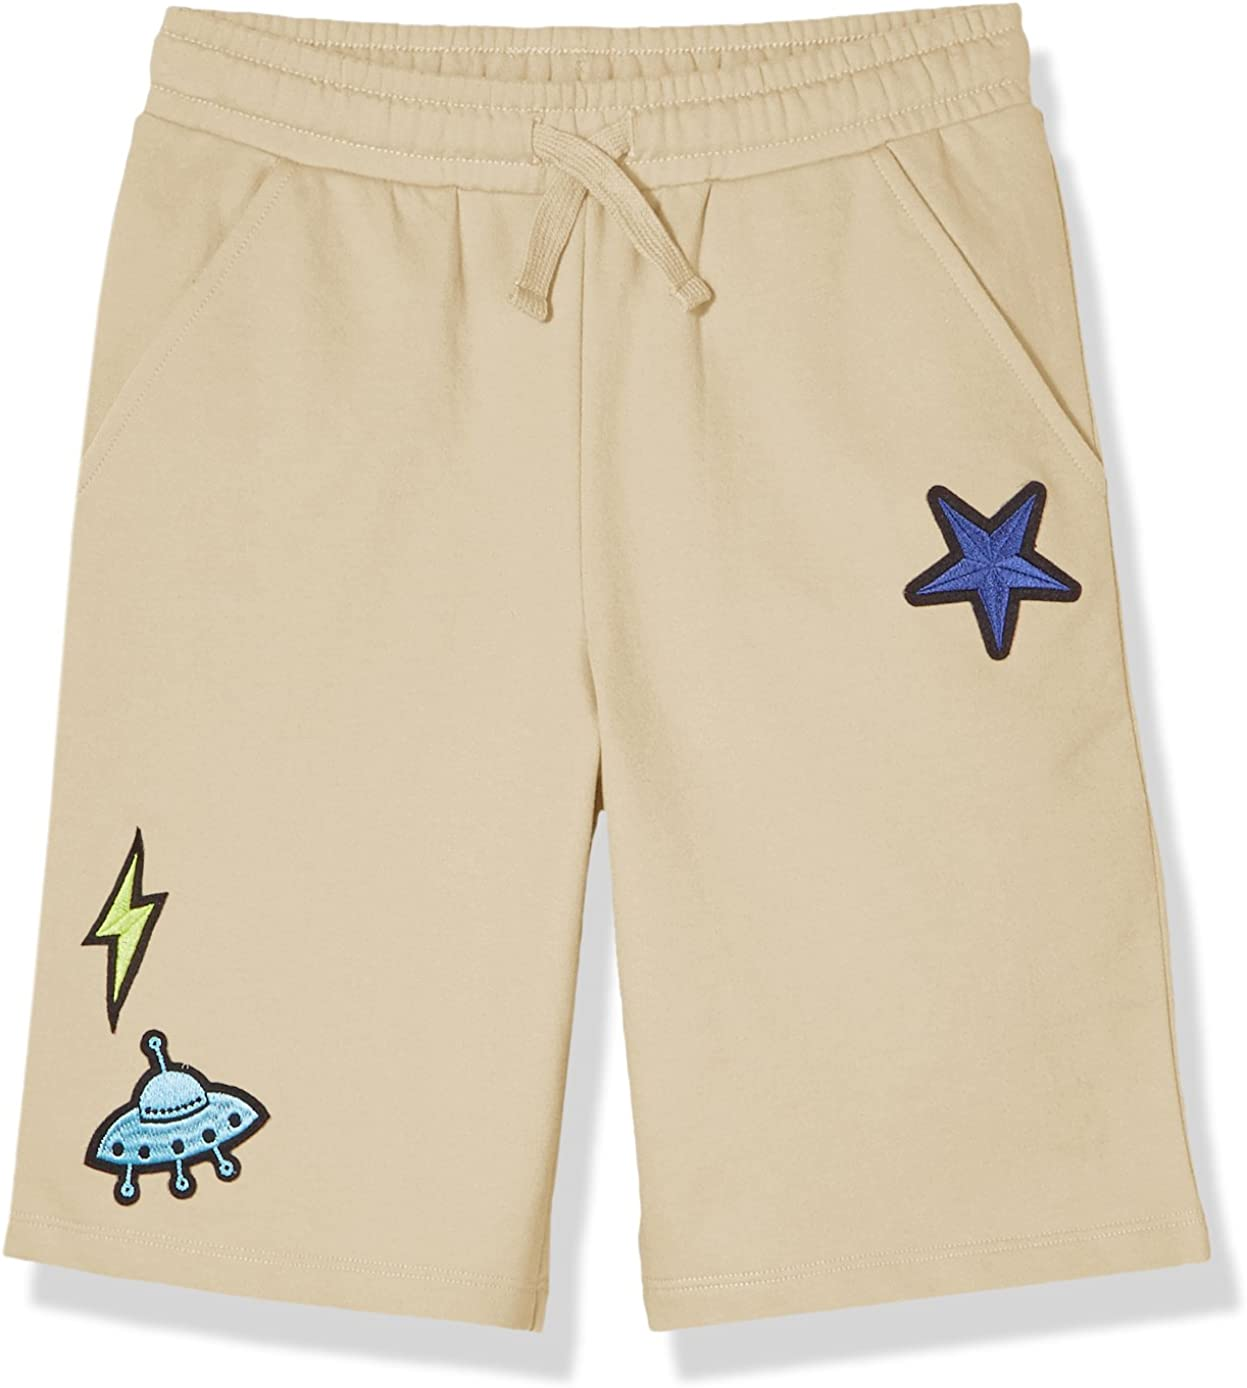 A for Awesome Boys French Terry Shorts